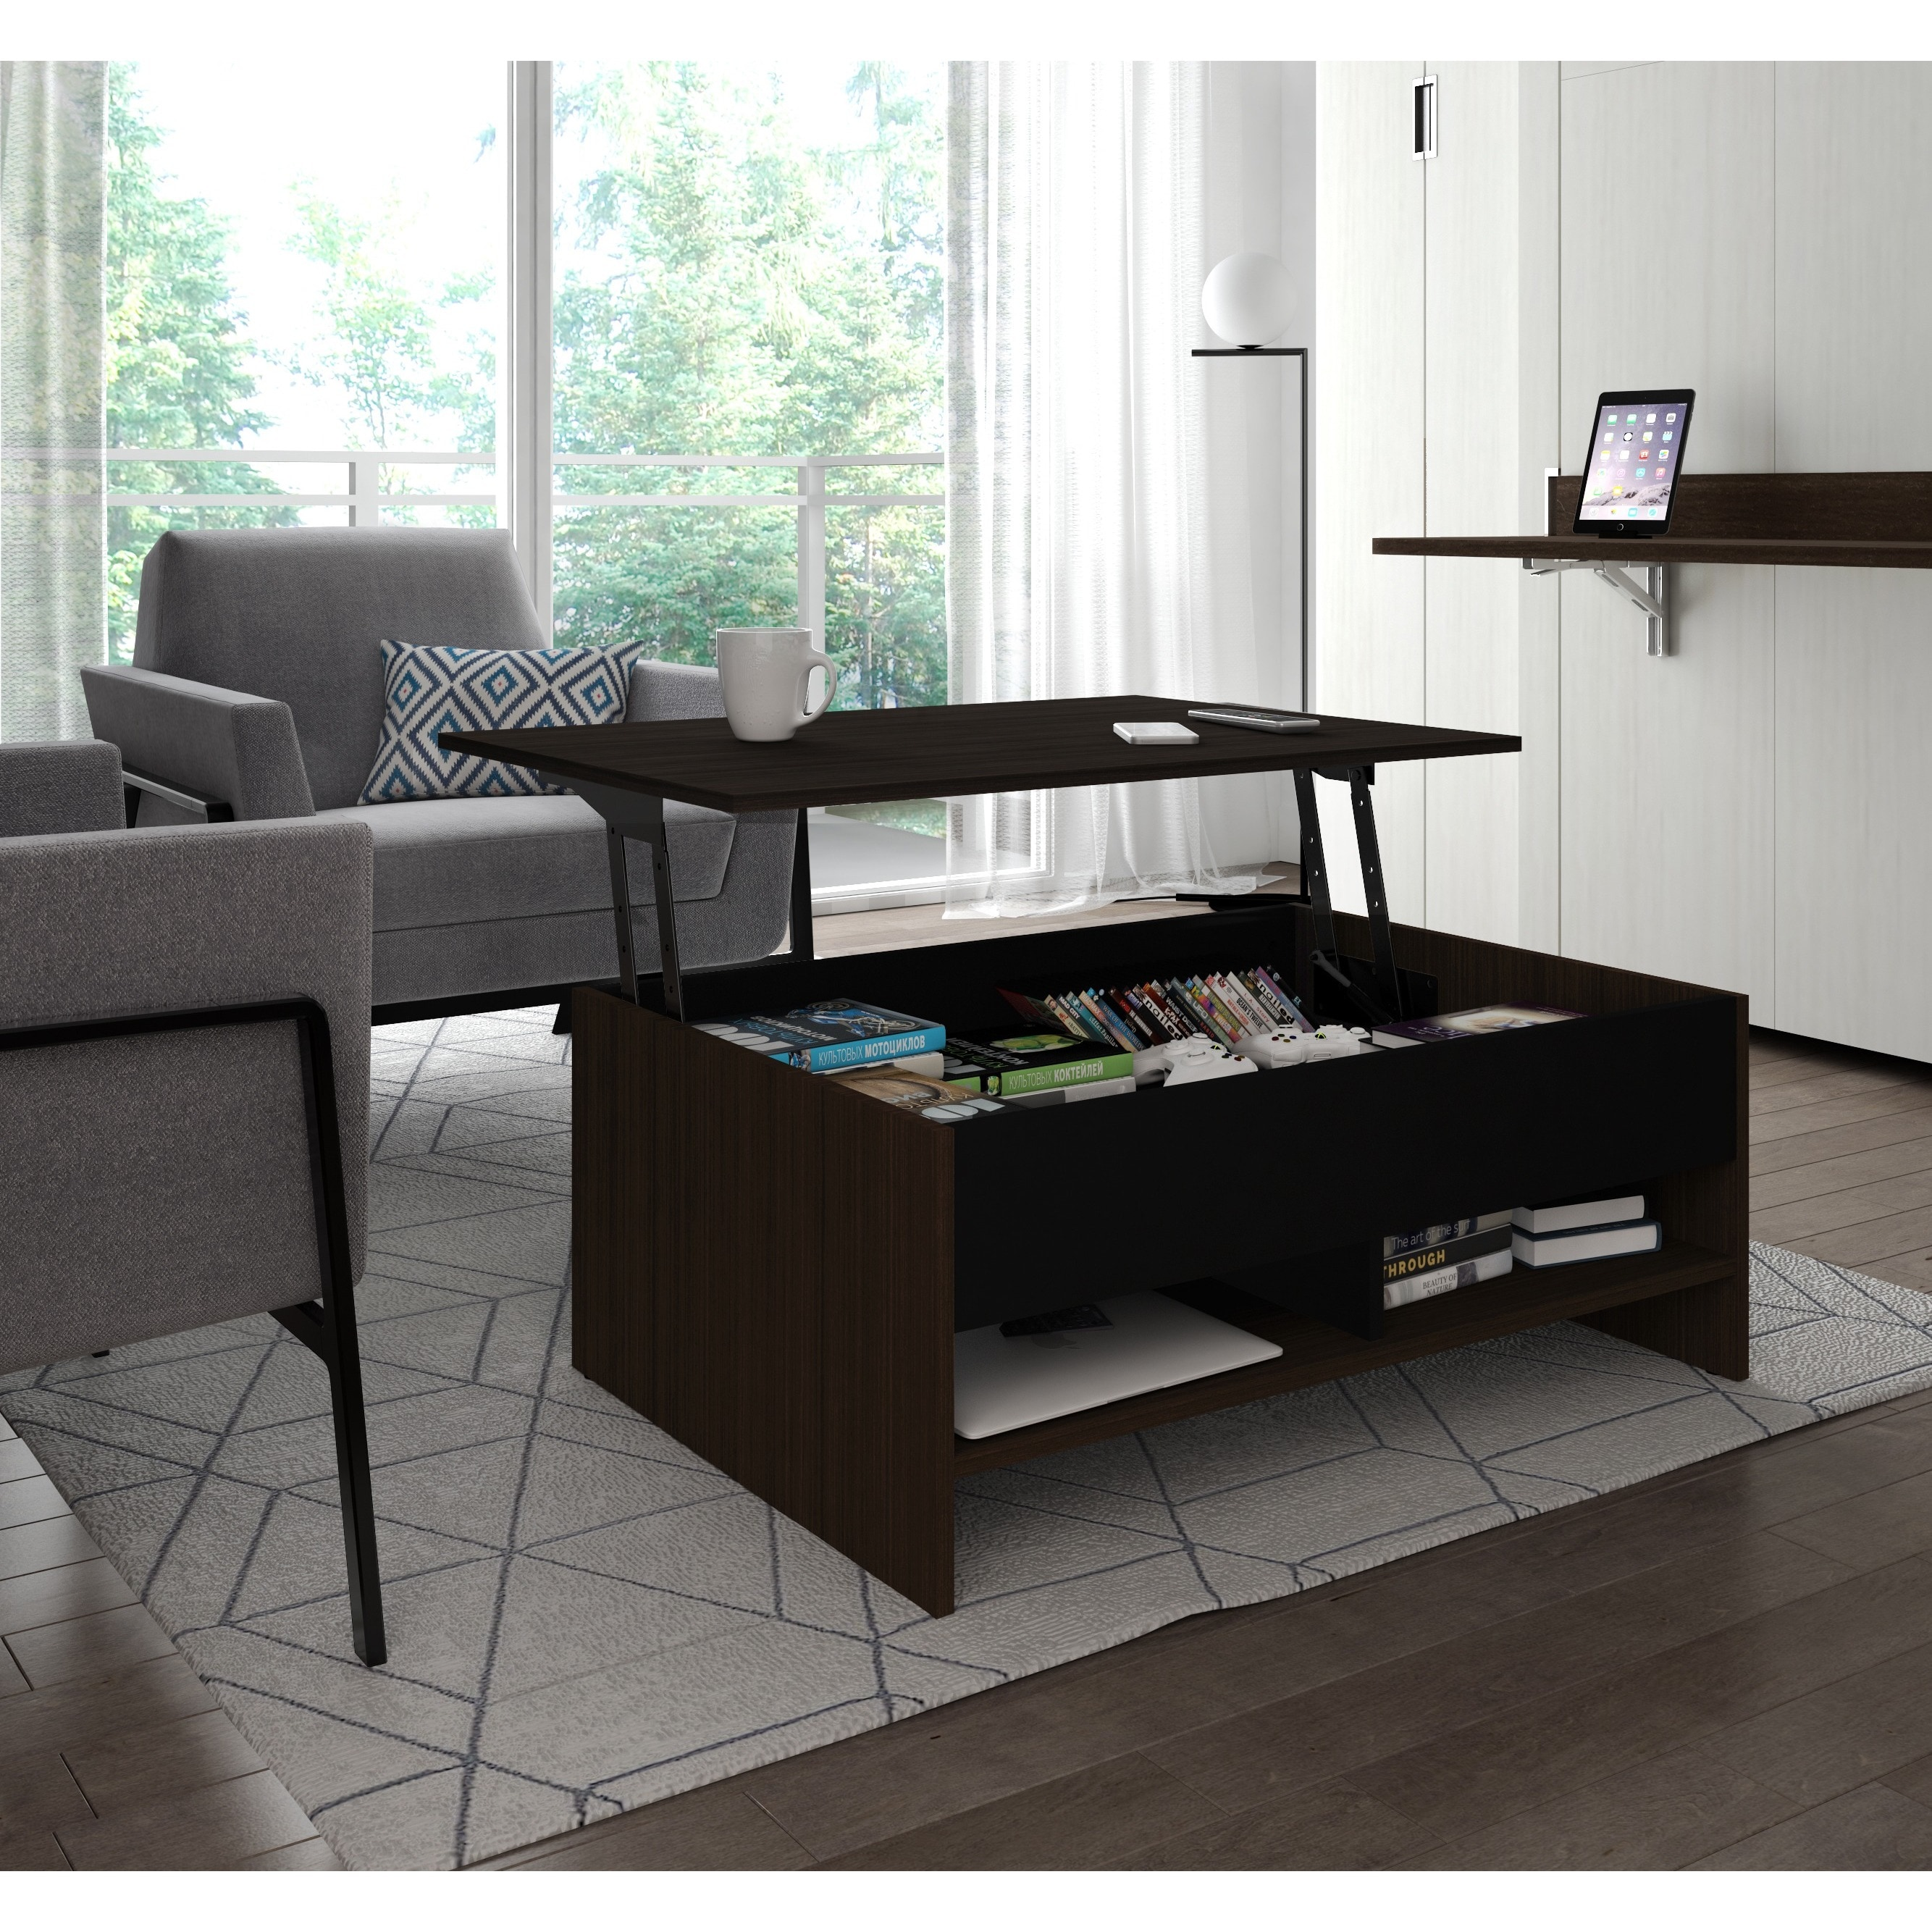 Bestar Small Space 37 inch Lift Top Storage Coffee Table Free